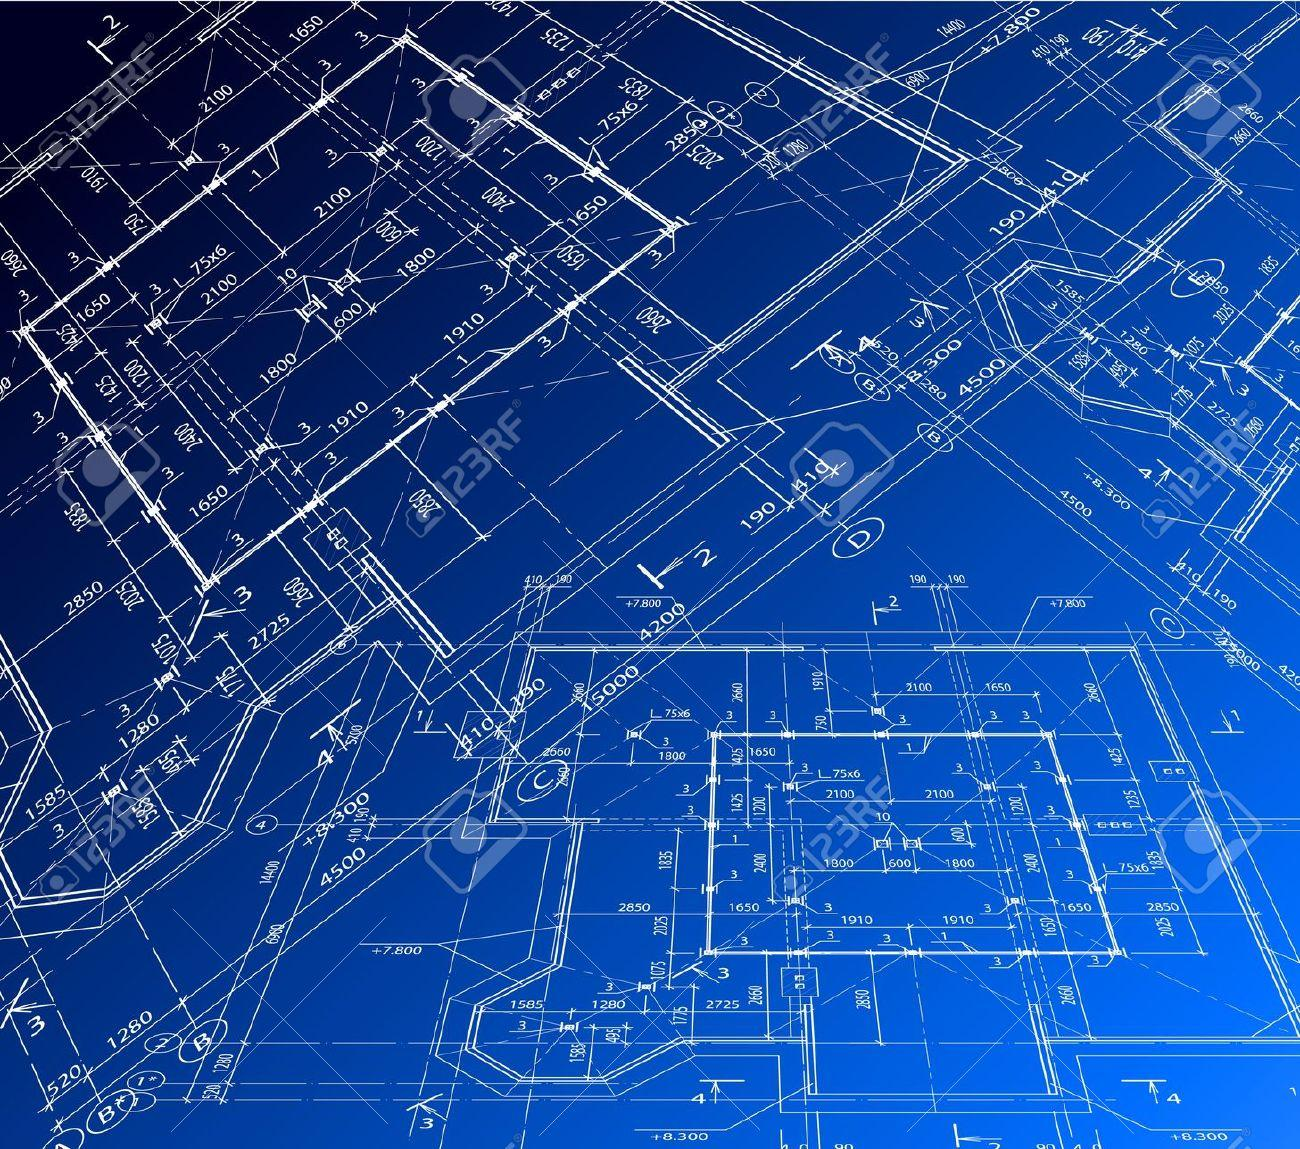 Blue print background wallpapersafari pics photos blueprint background 20416 hd wallpapers 1300x1149 malvernweather Gallery